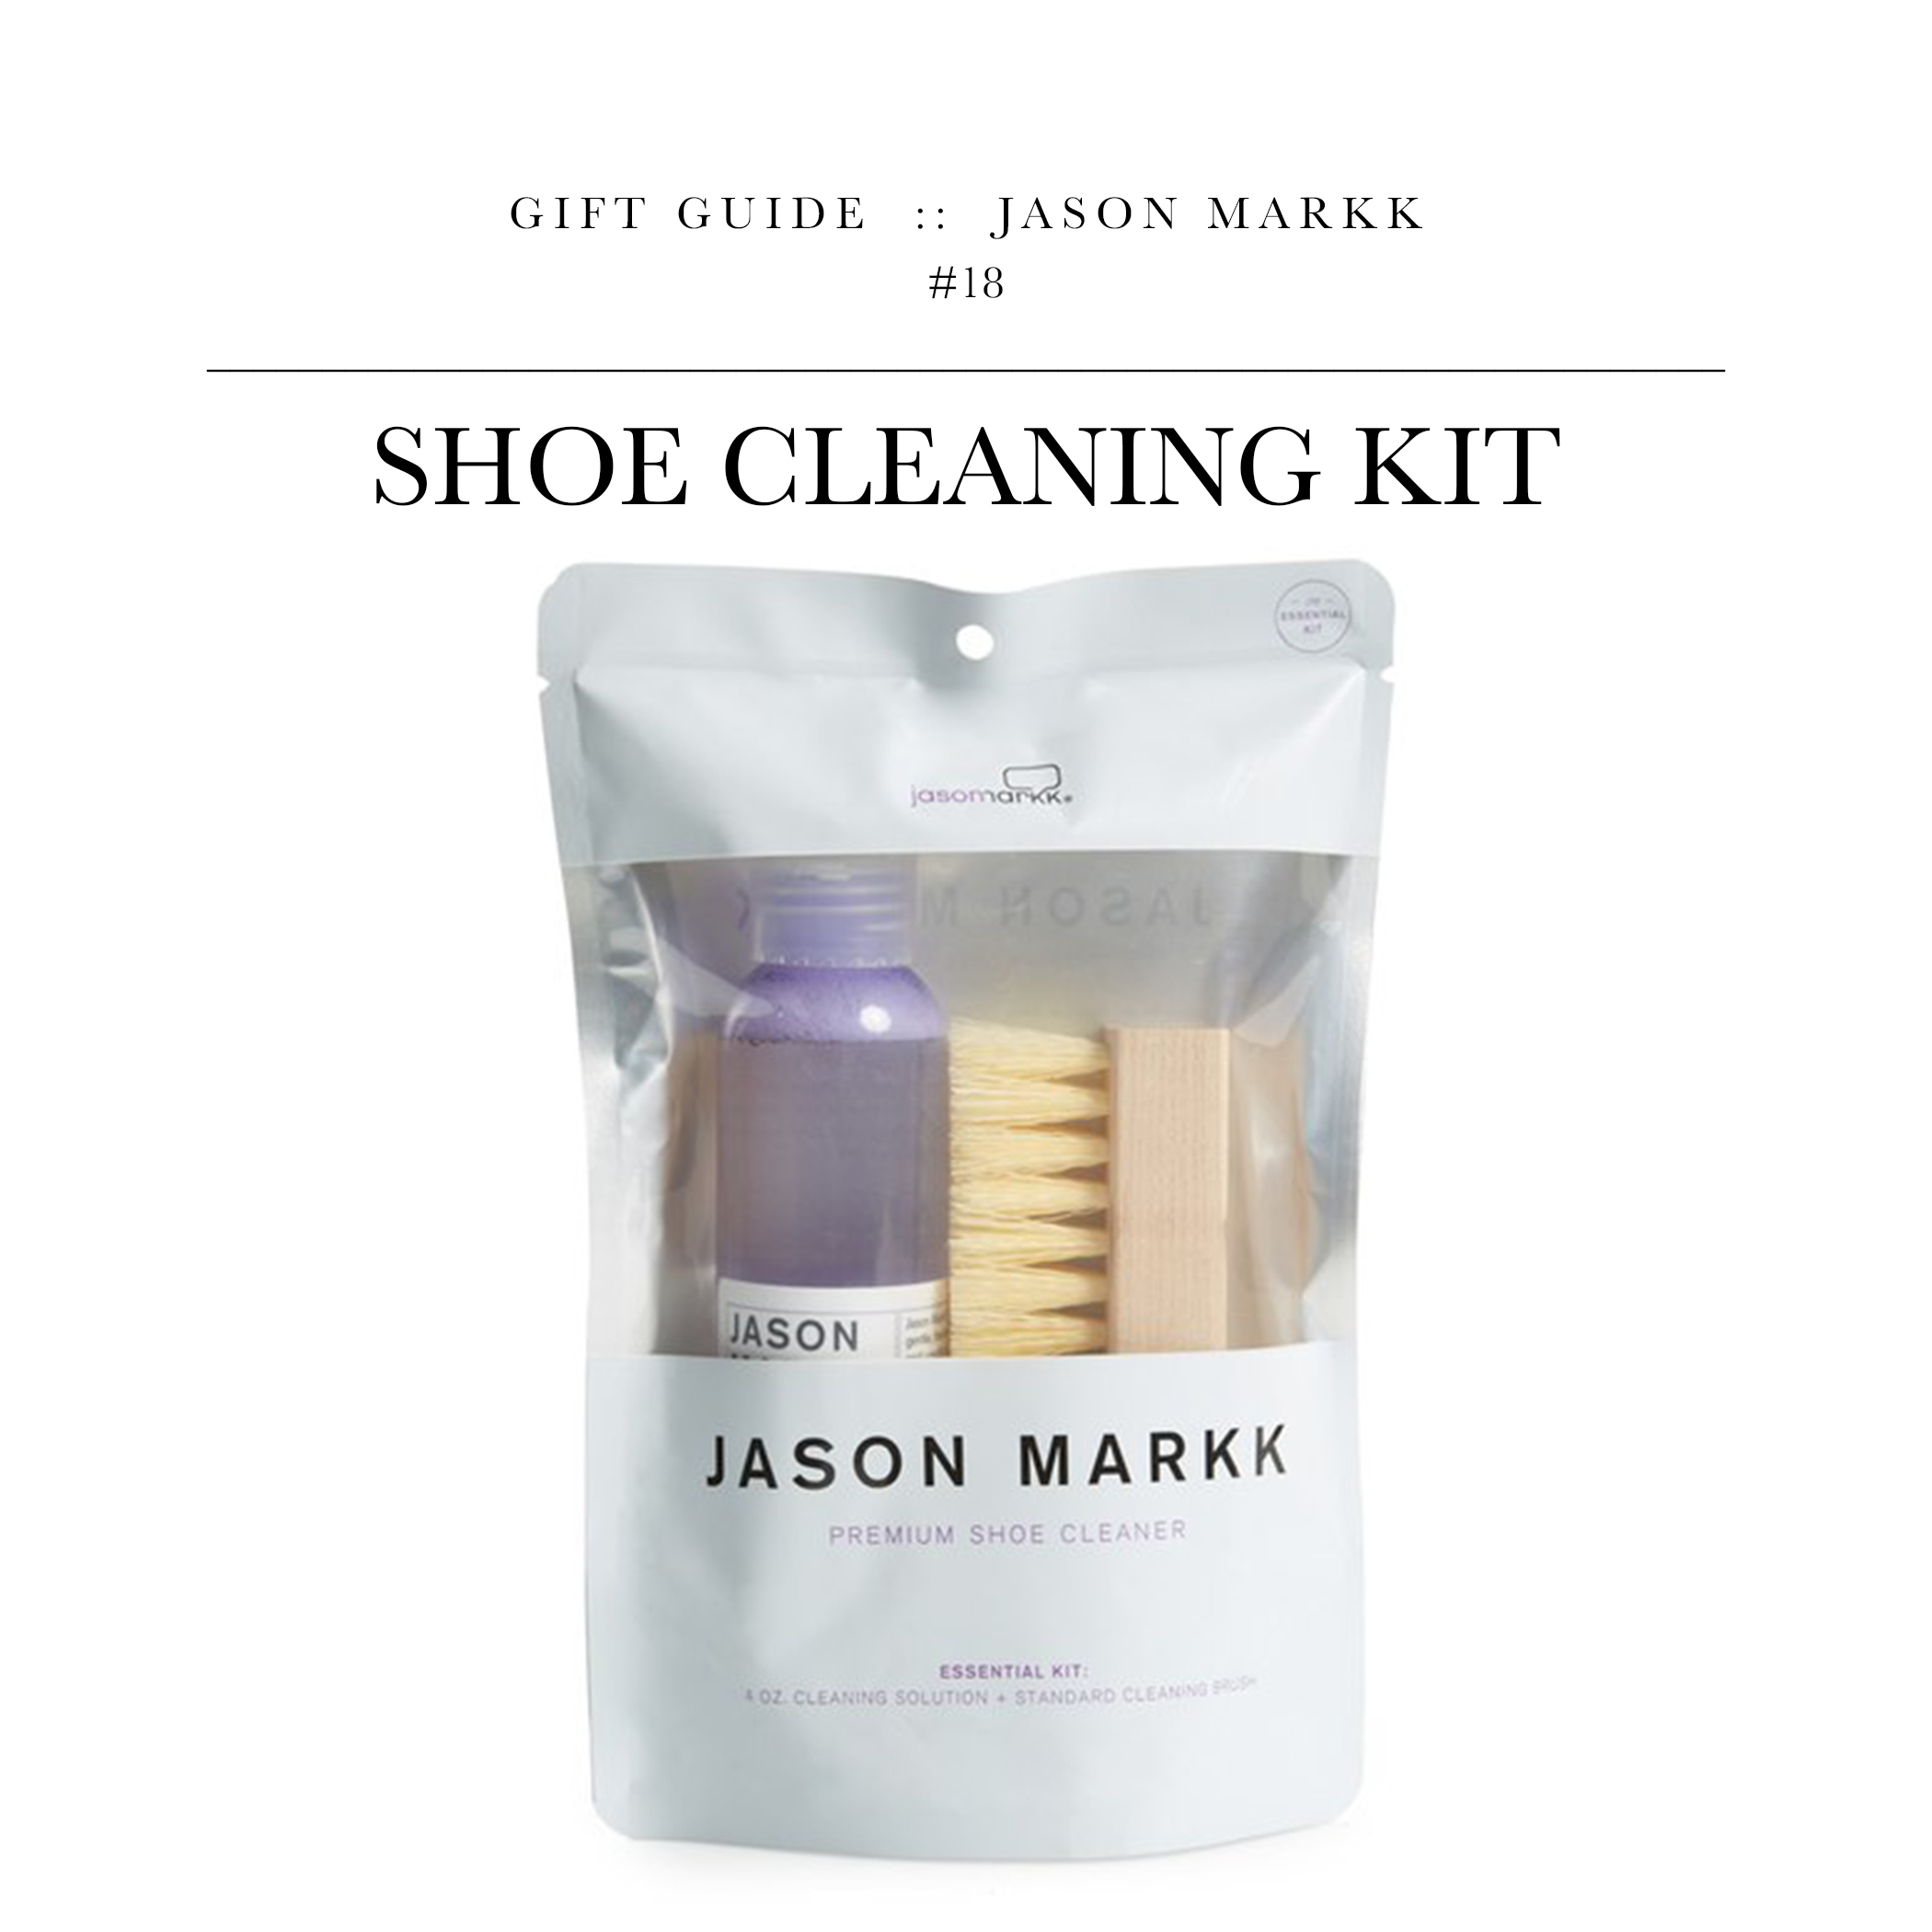 Shoe Cleaning Kit via Jason Markk // Everyone needs a good shoe cleaning kit. Not the most exciting, but always practical.